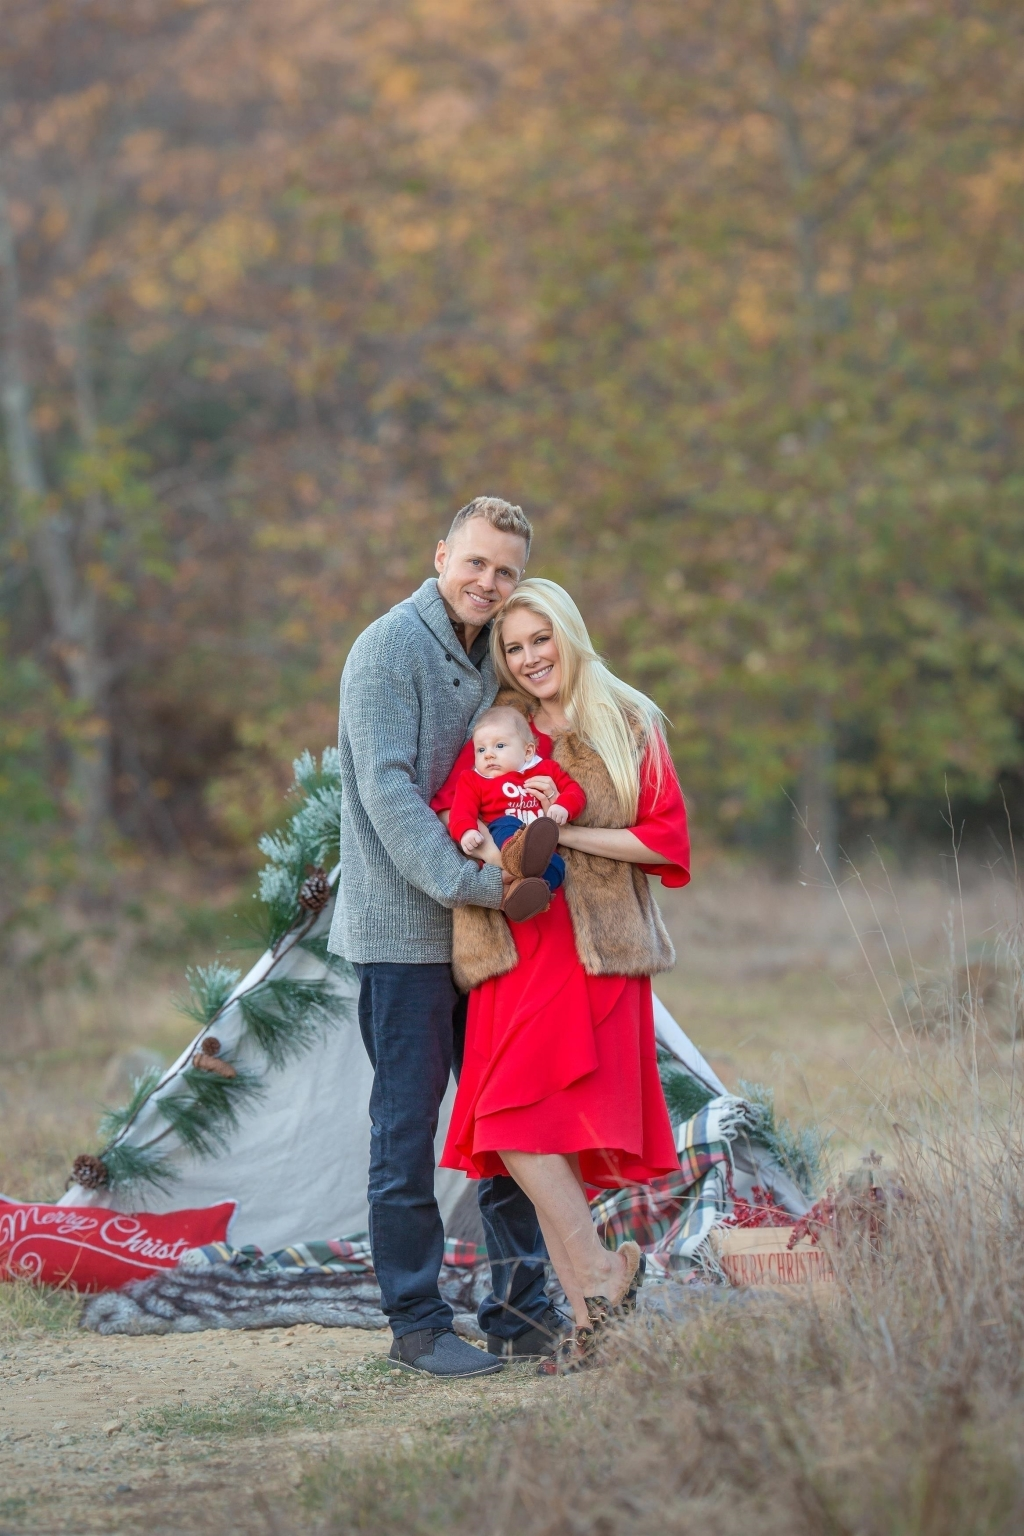 Heidi Montag and Spencer Pratt ring in the Holidays with Baby Gunner